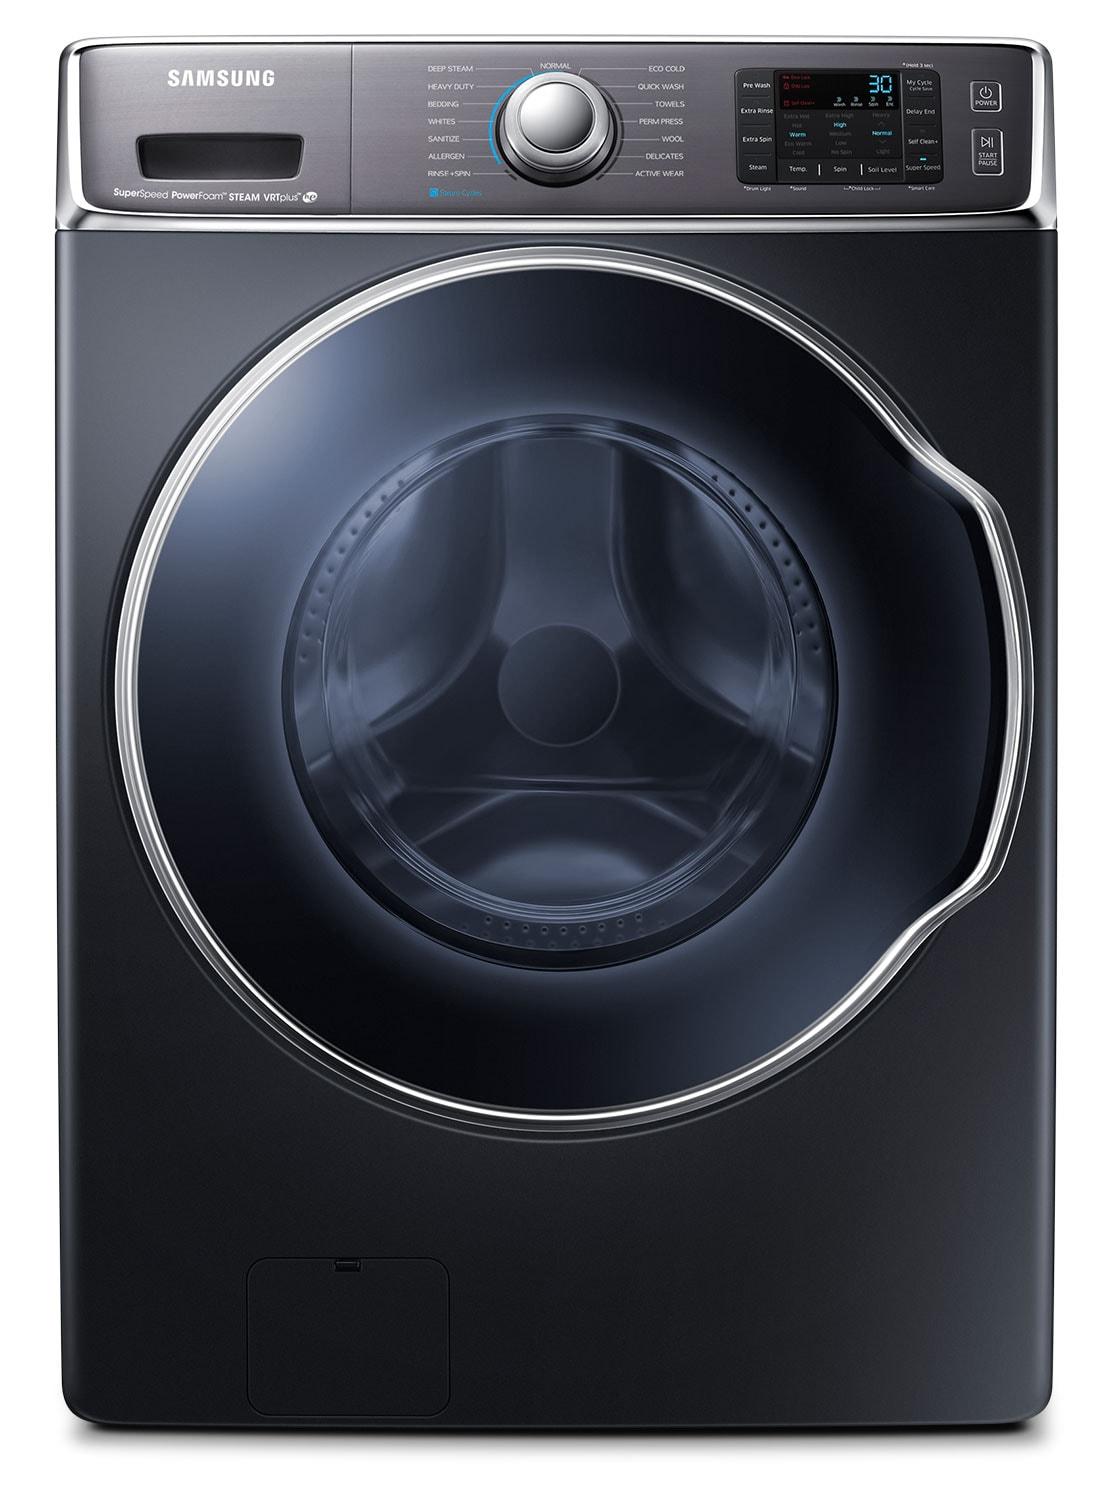 Samsung Charcoal Front-Load Washer (6.5 Cu. Ft.) - WF56H9100AG